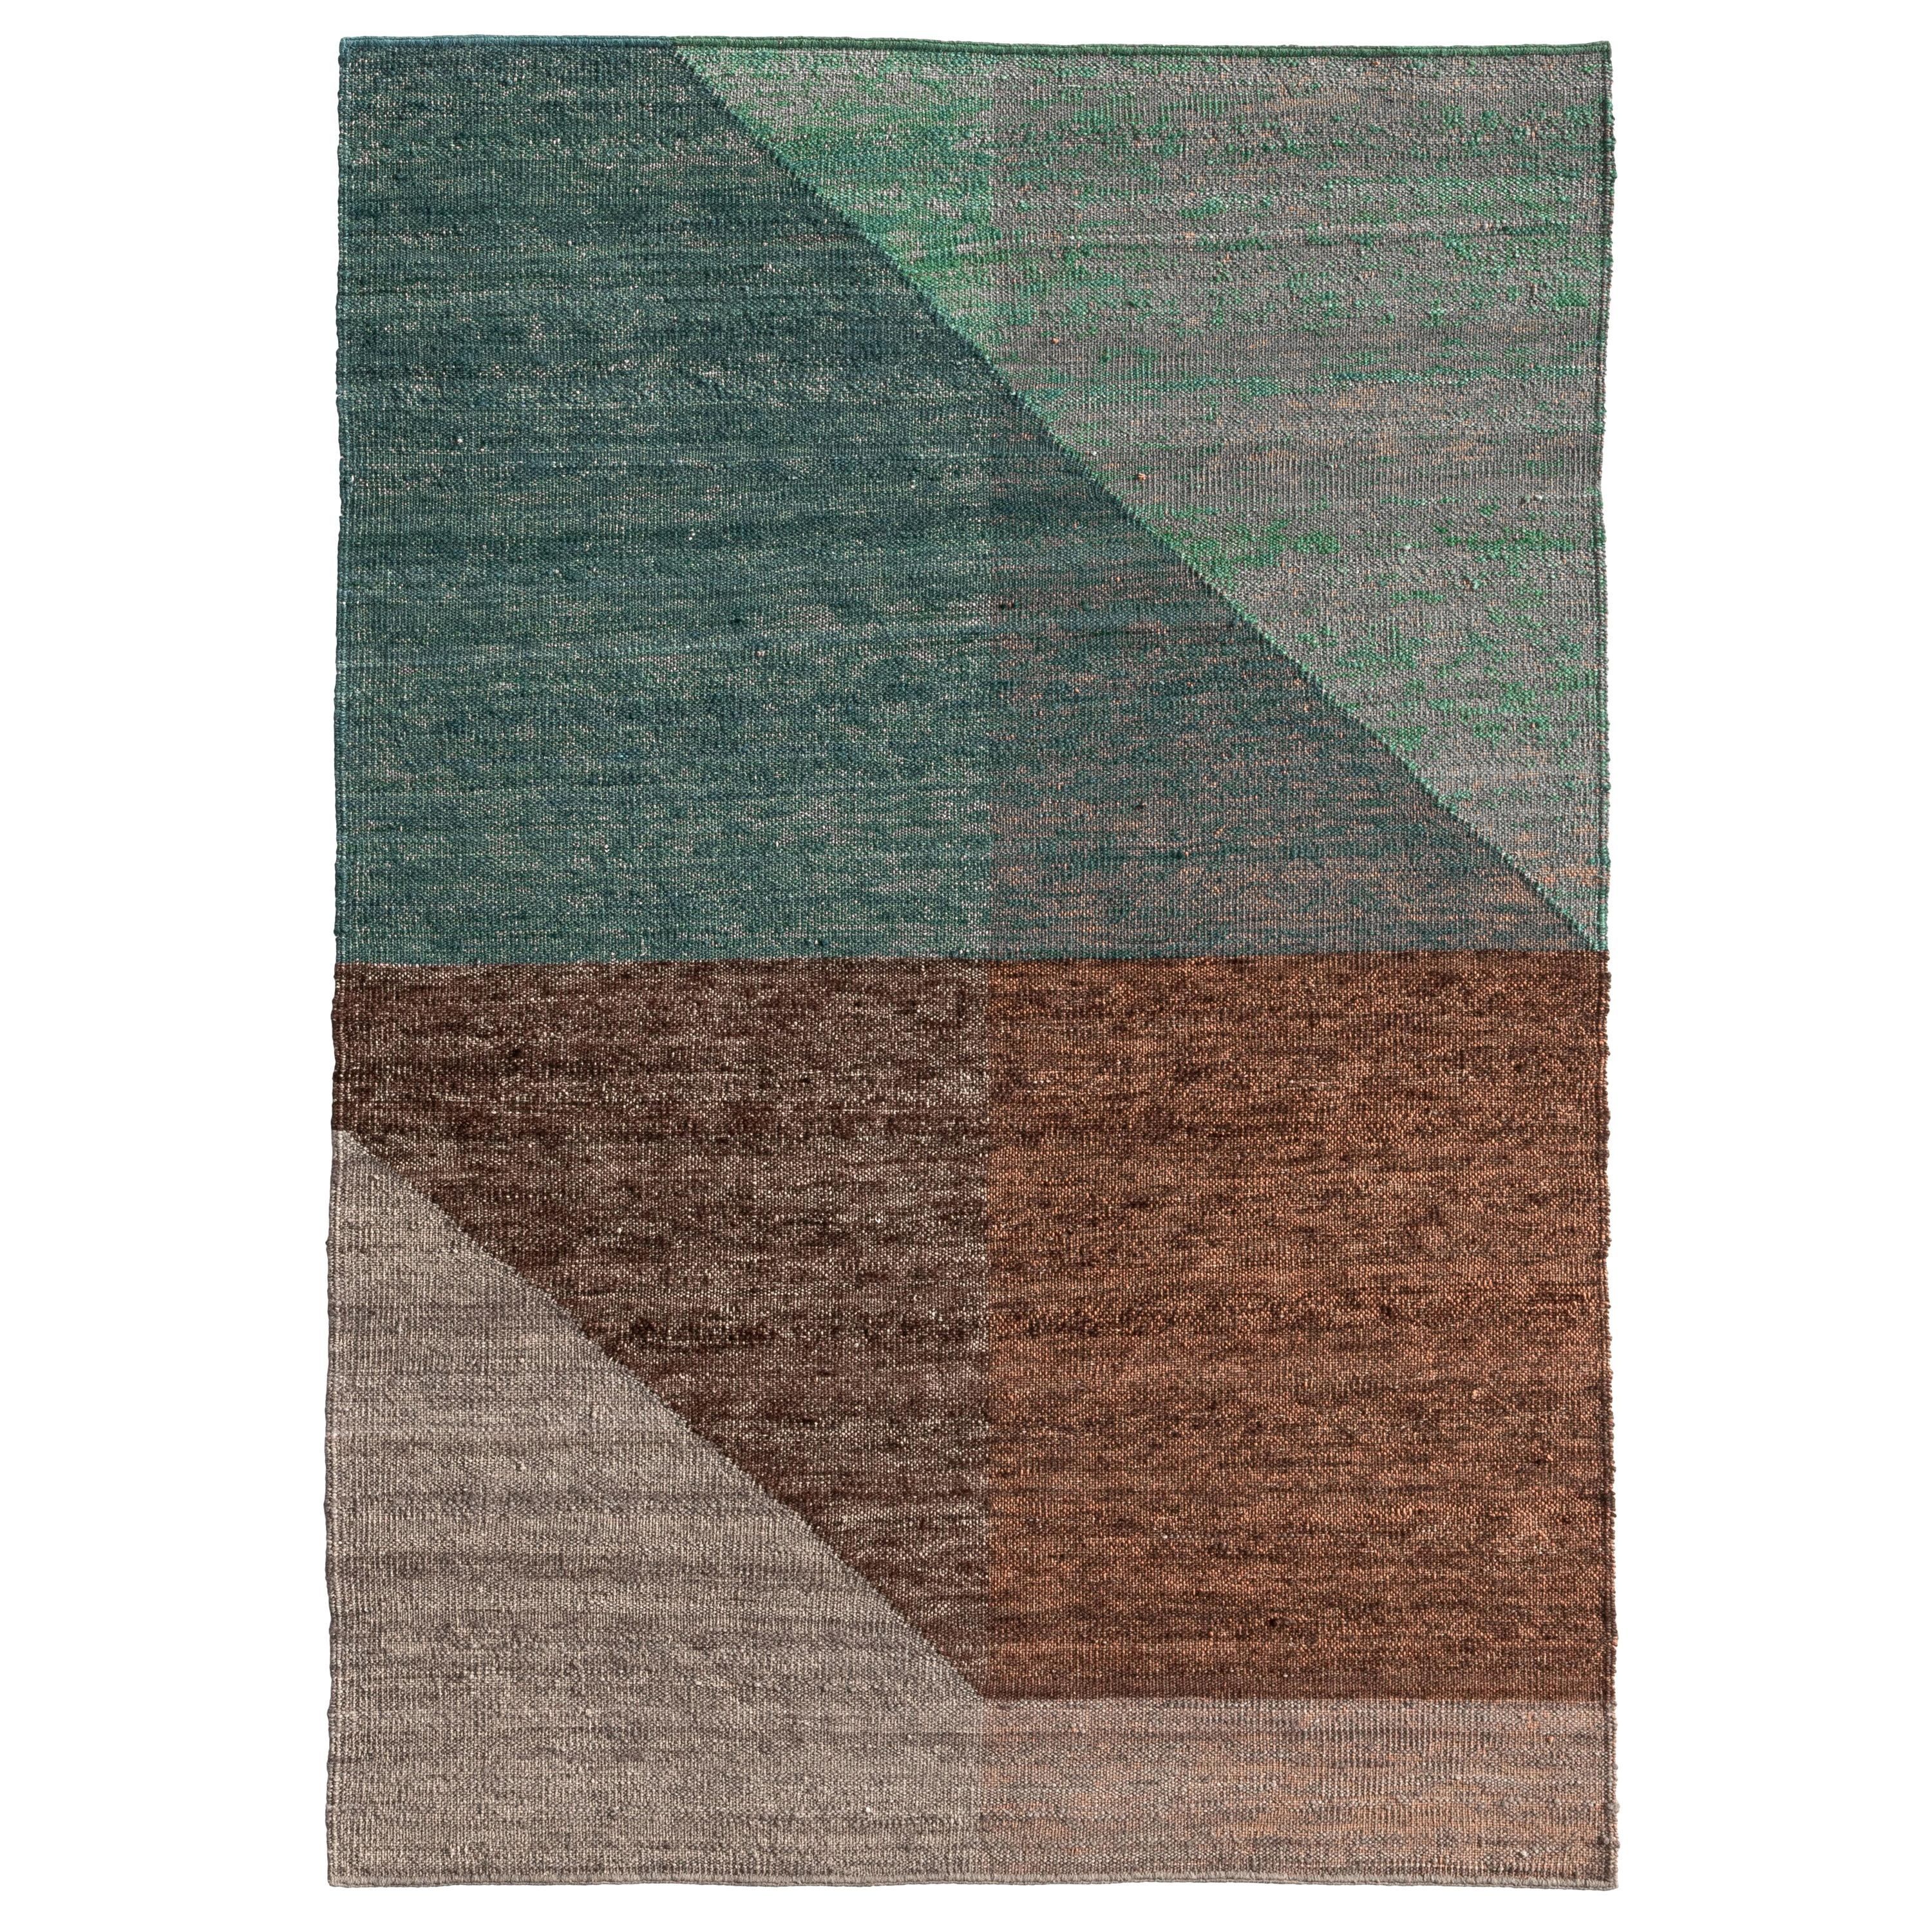 Nanimarquina Capas 2 Standard Rug in Green and Brown by Mathias Hahn